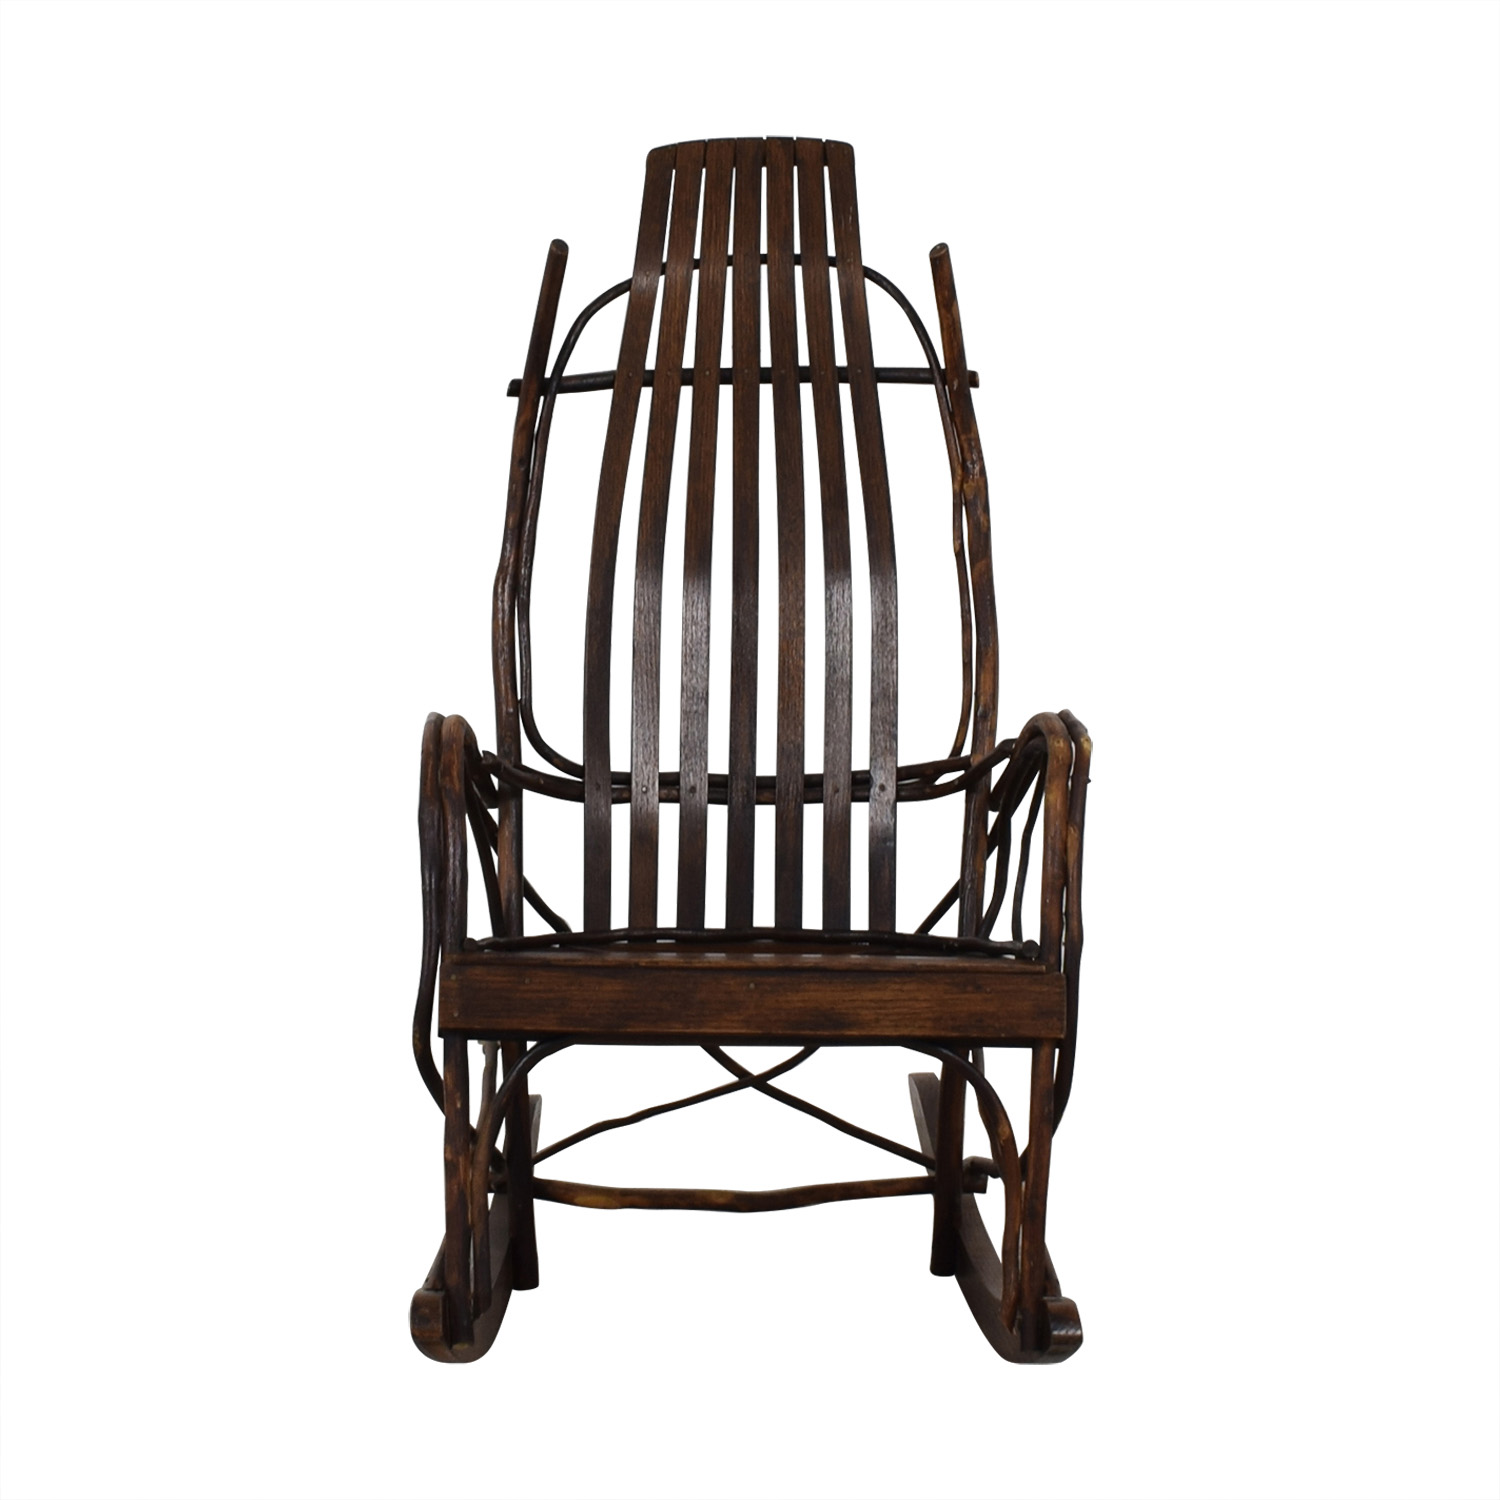 80 OFF  Amish Wood Rocking Chair  Chairs